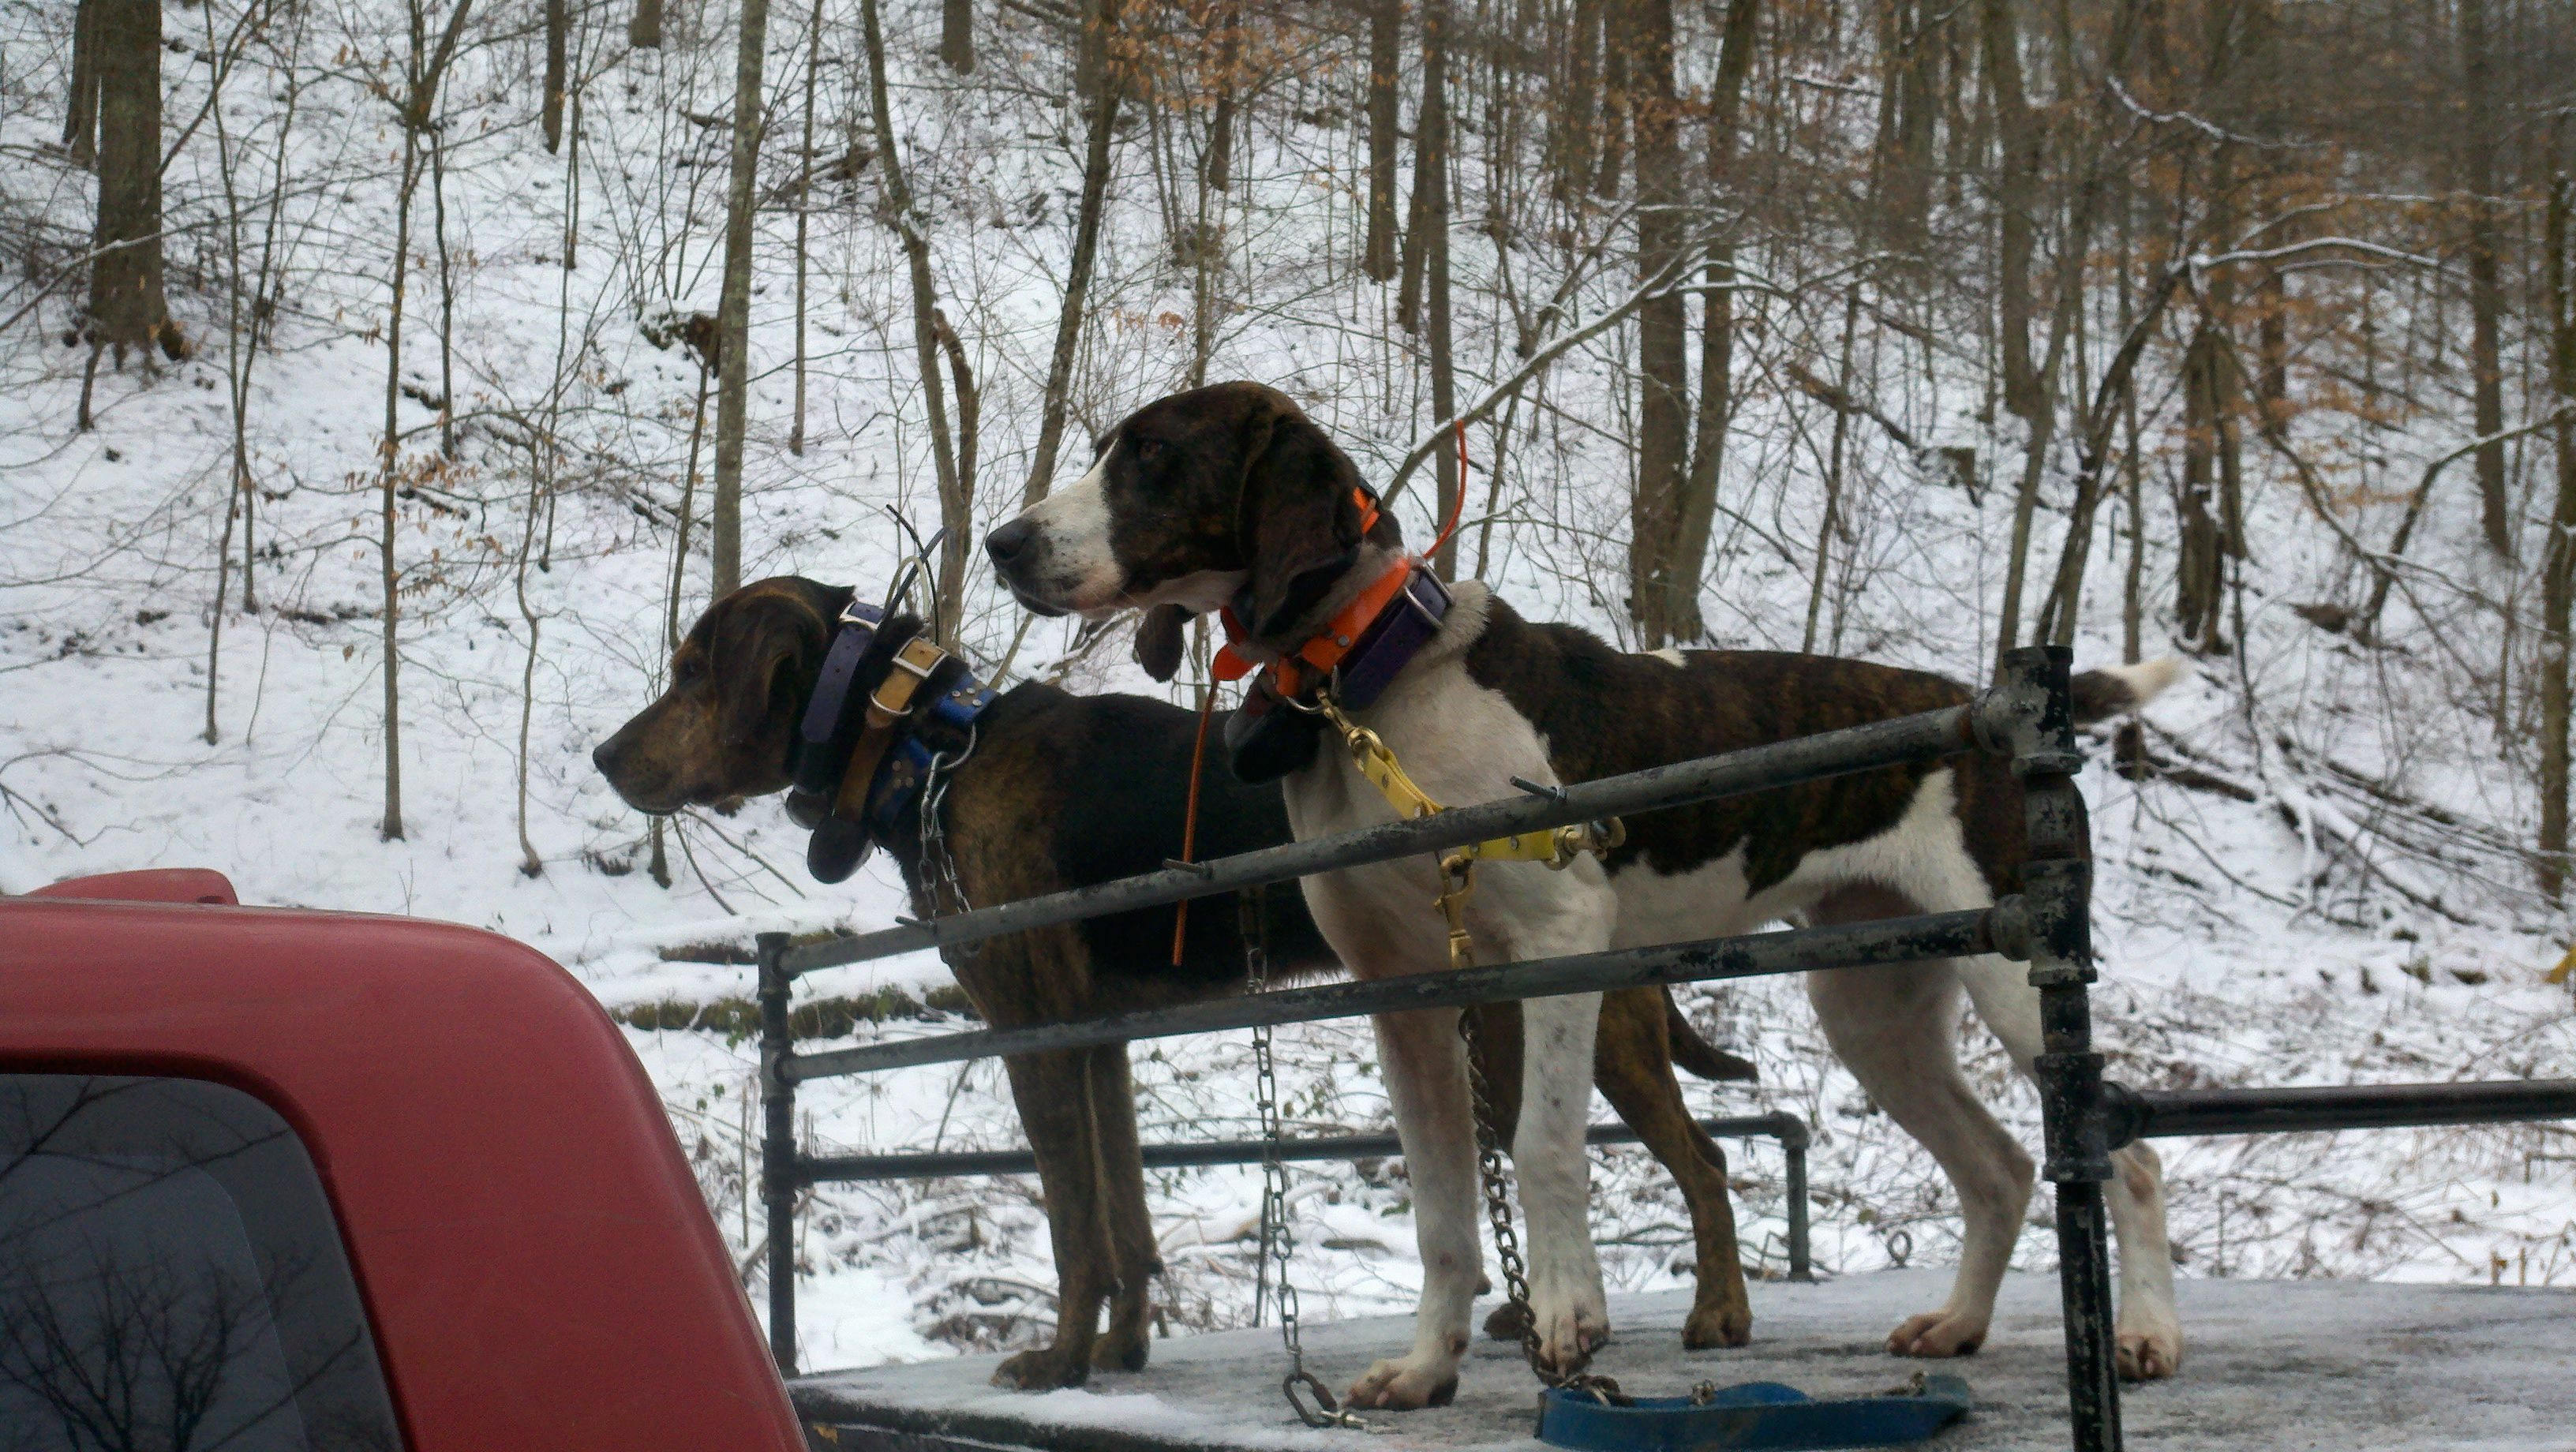 Rigging For Bear Hound Dog Bear Hunting Hunting Dogs